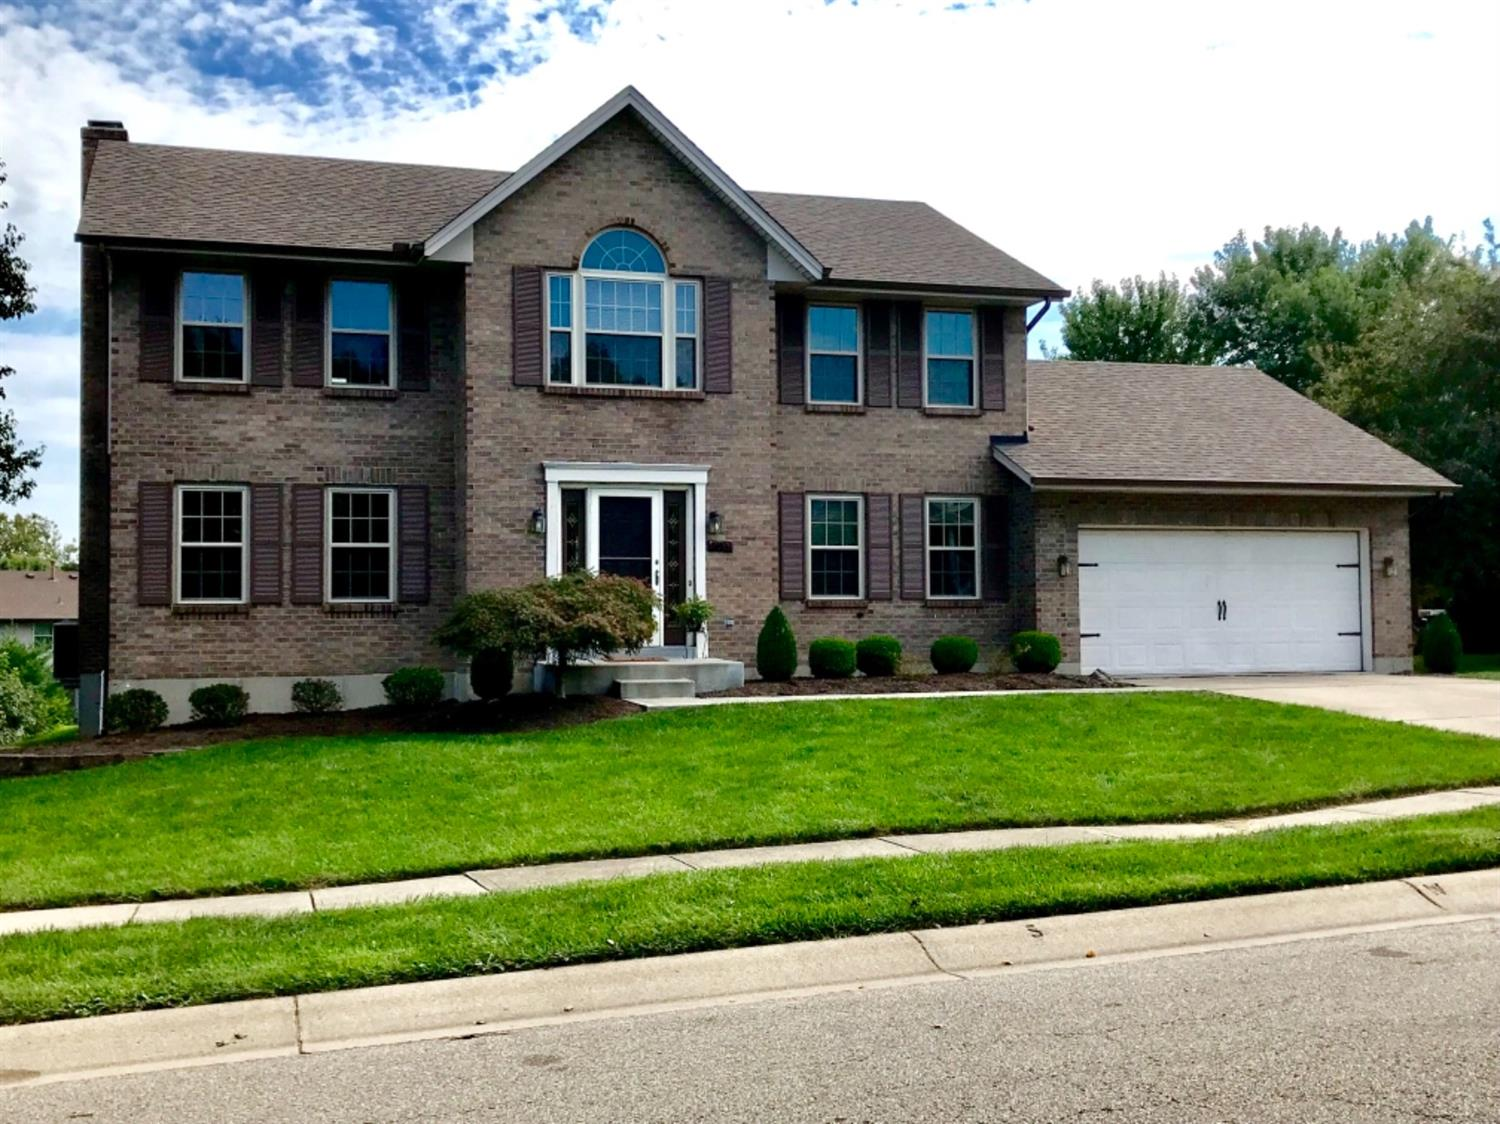 Property for sale at 6386 Kings Arms Way, Fairfield,  OH 45014